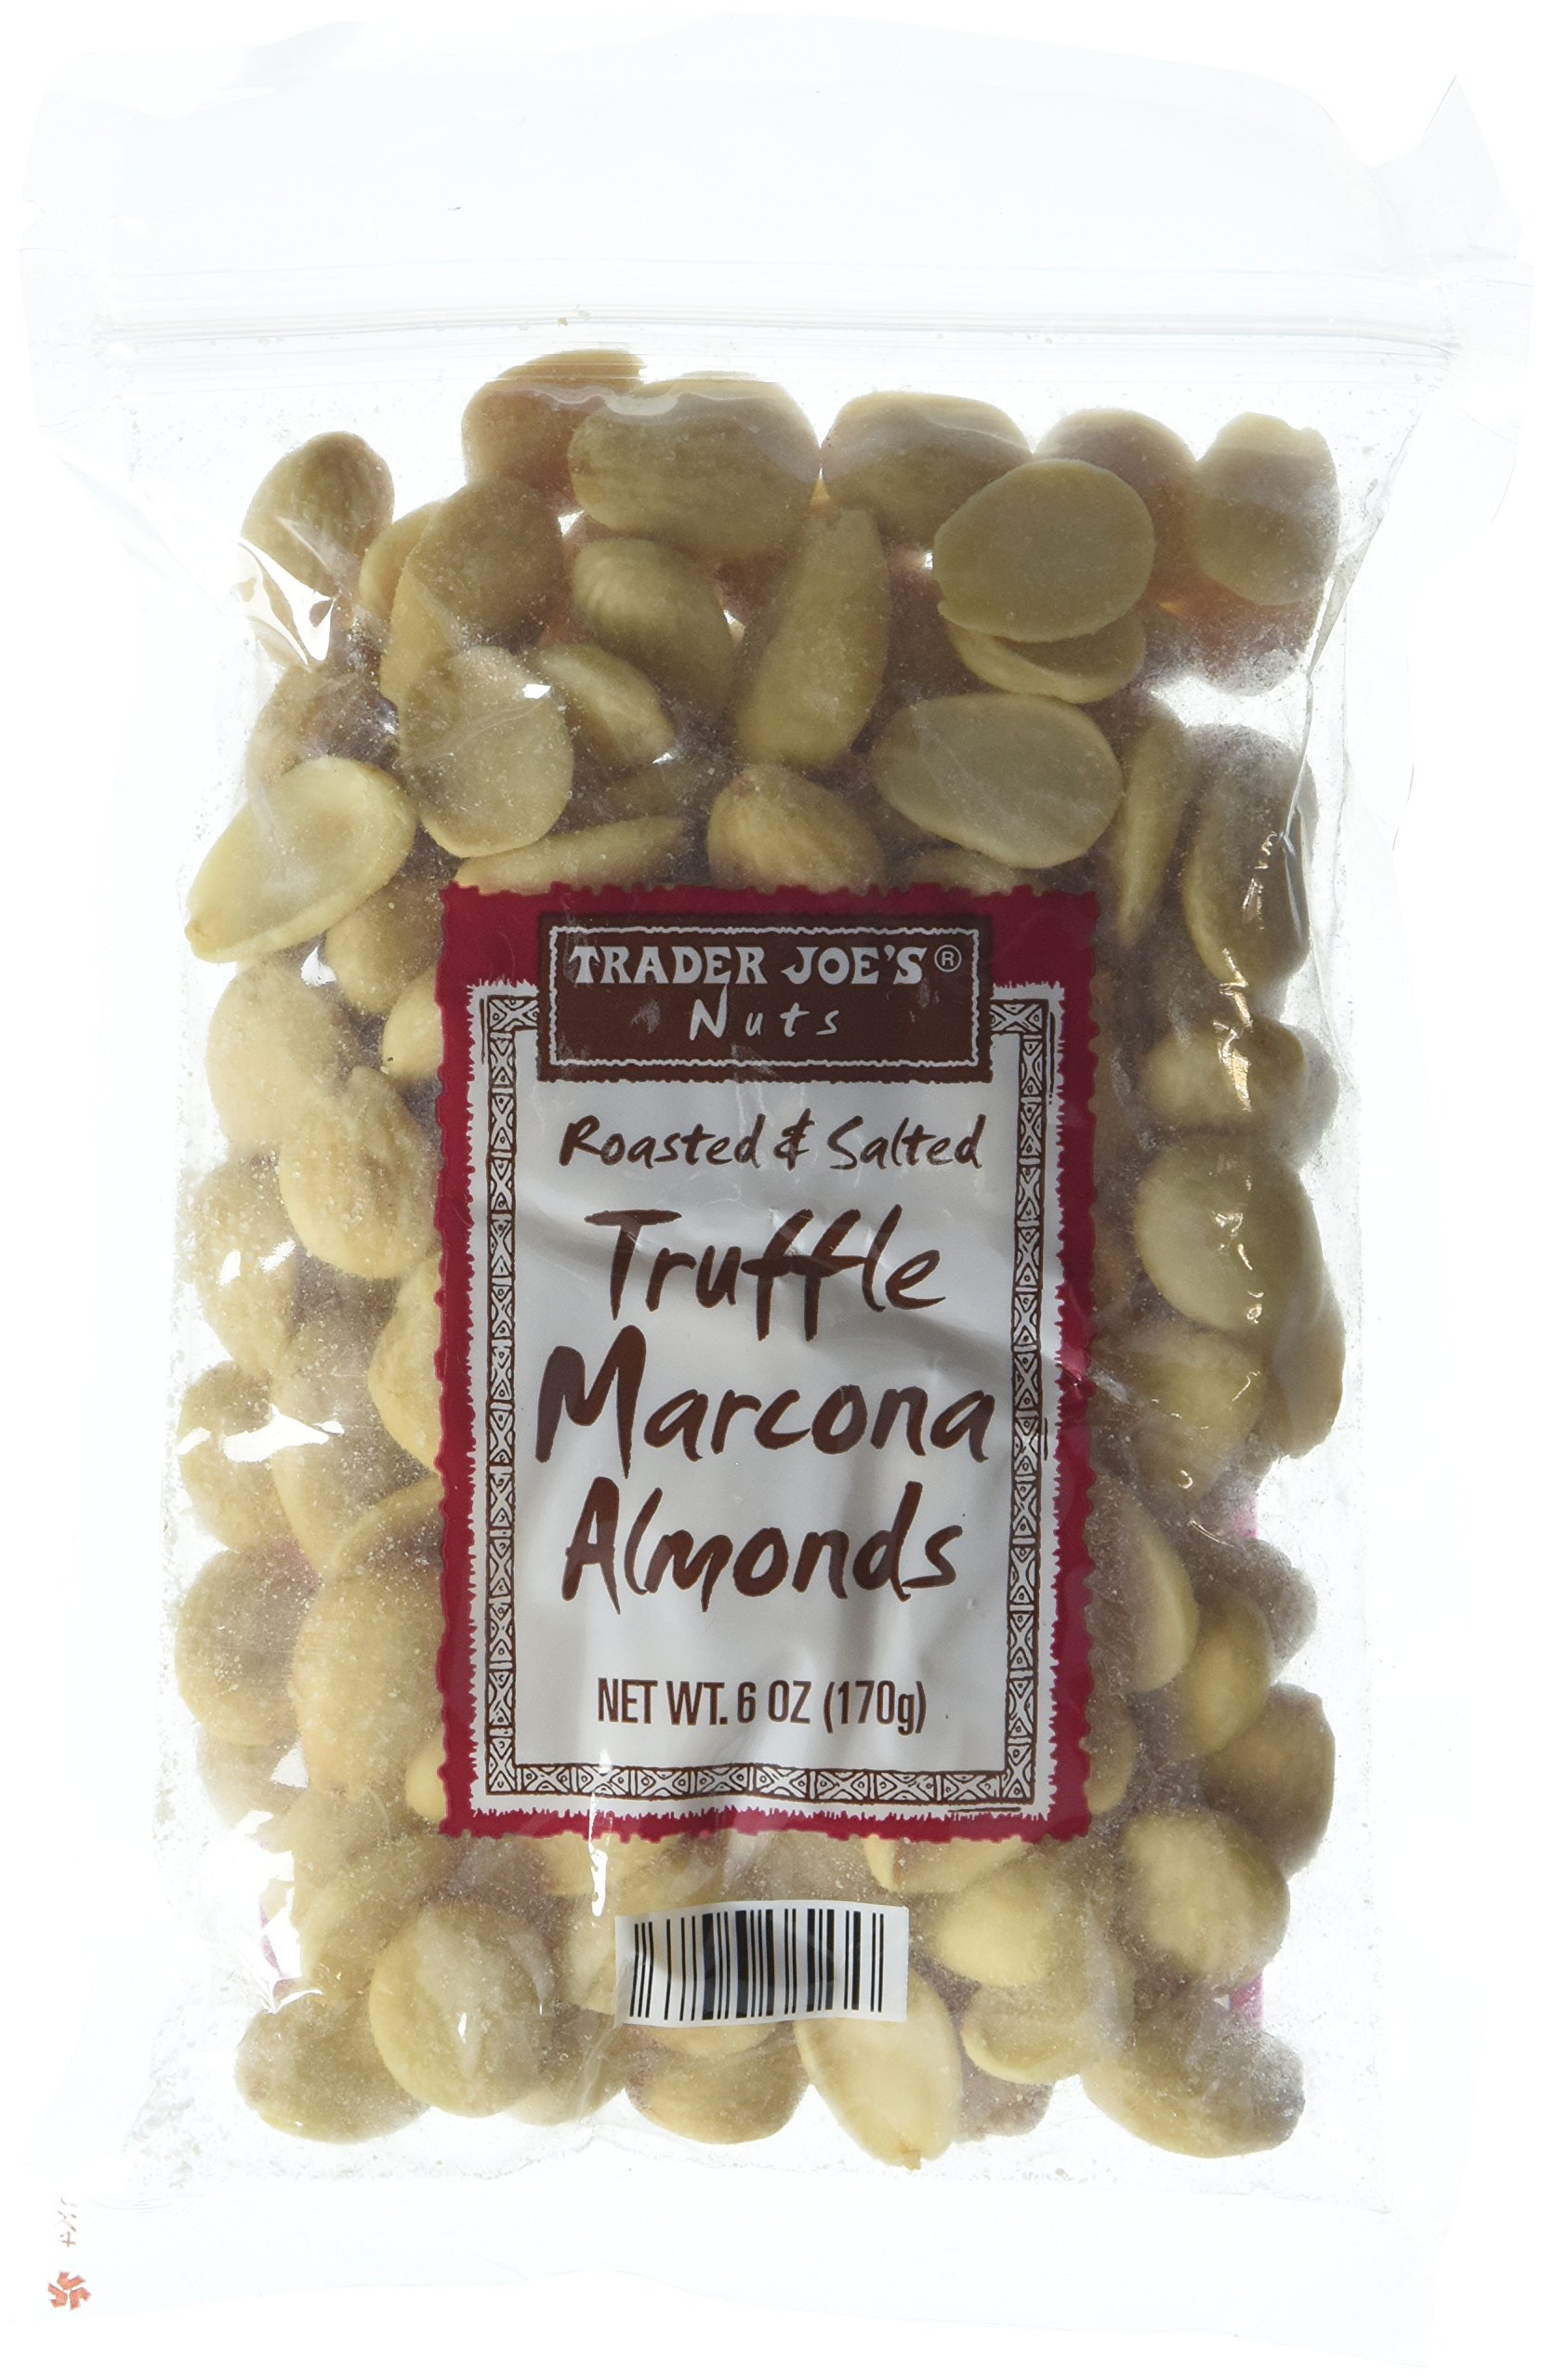 Trader Joe's Roasted & Salted Truffle Marcona Almonds - Pack of 2